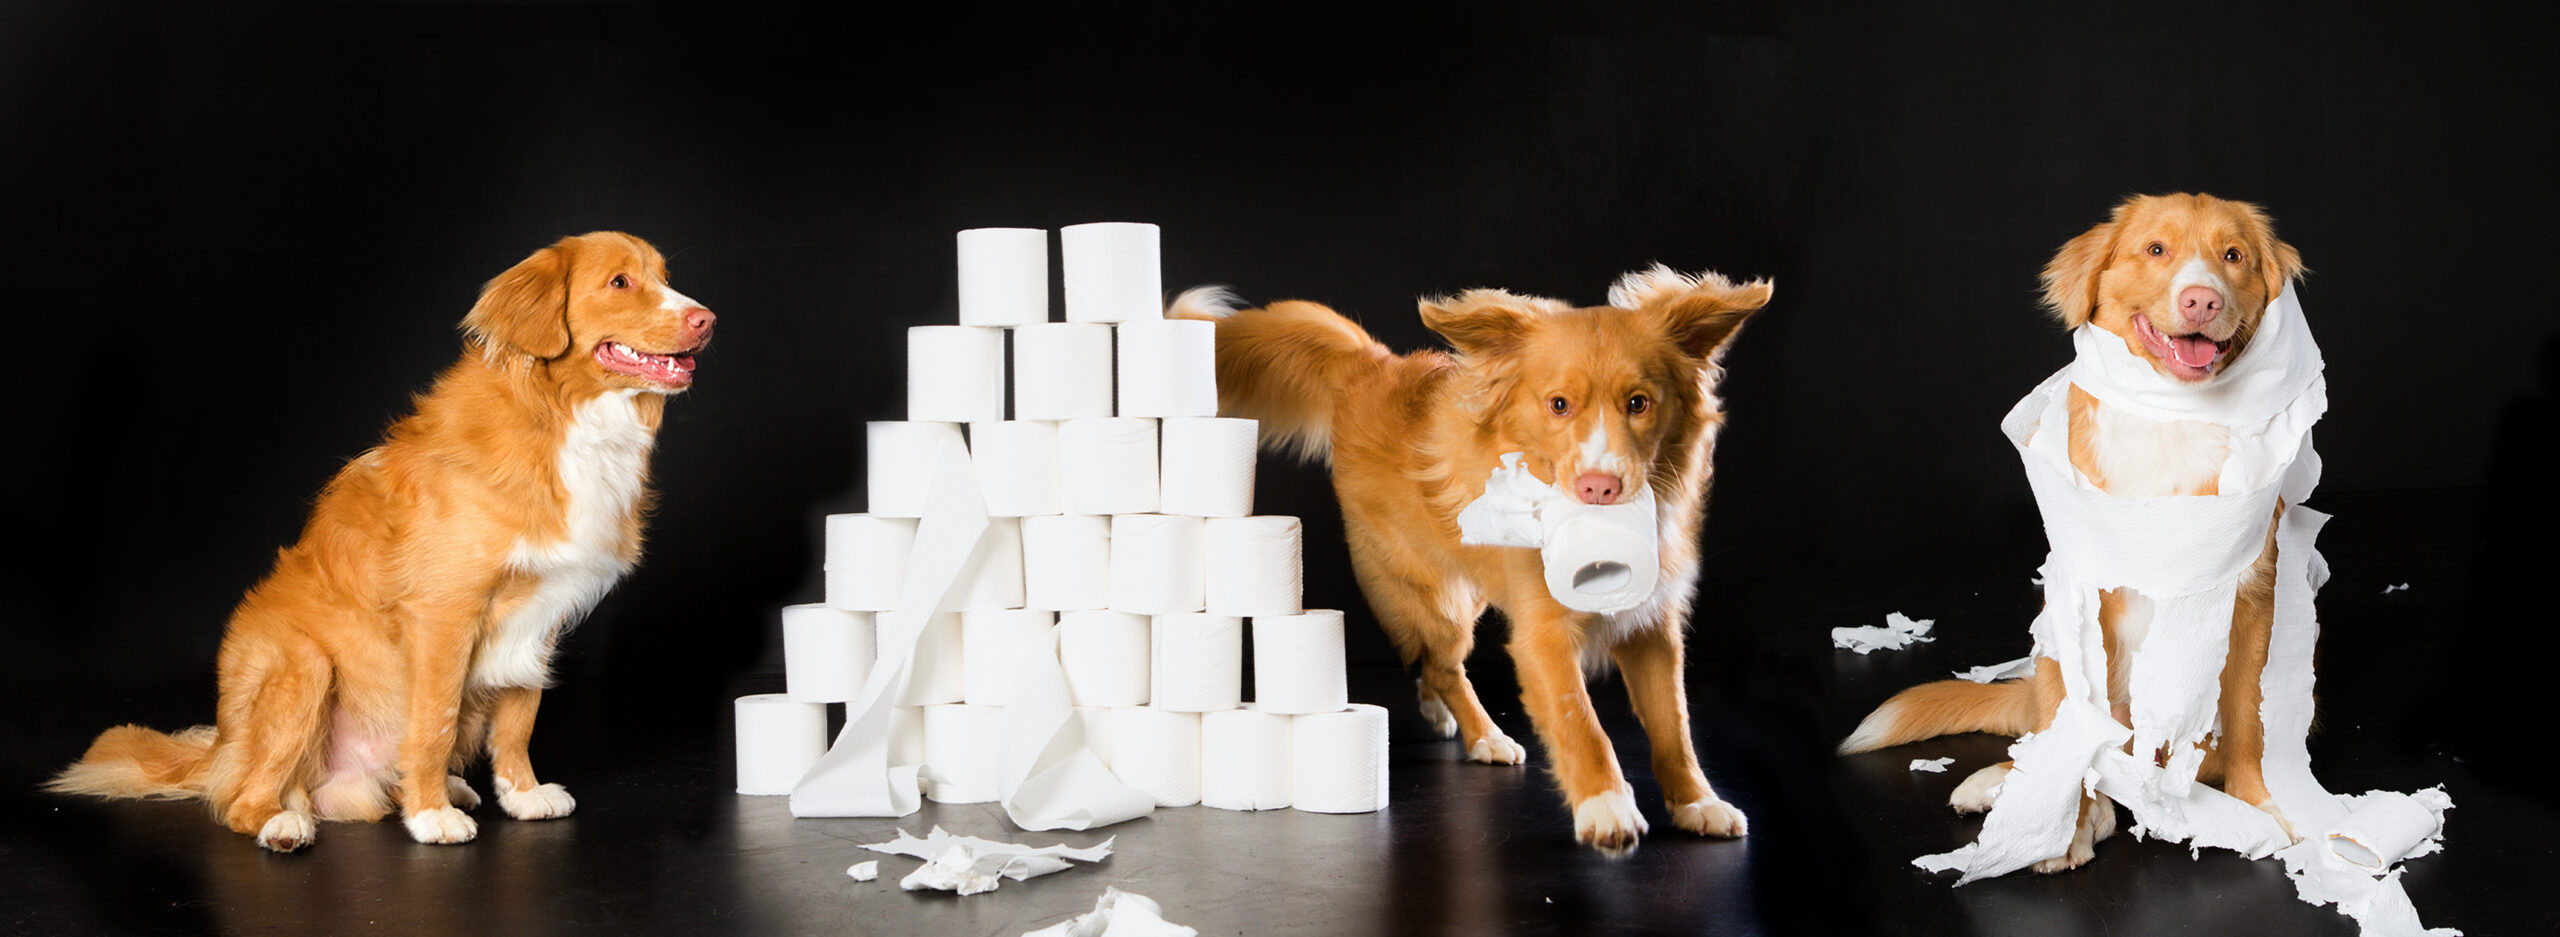 Dog playing with toilet paper on black background